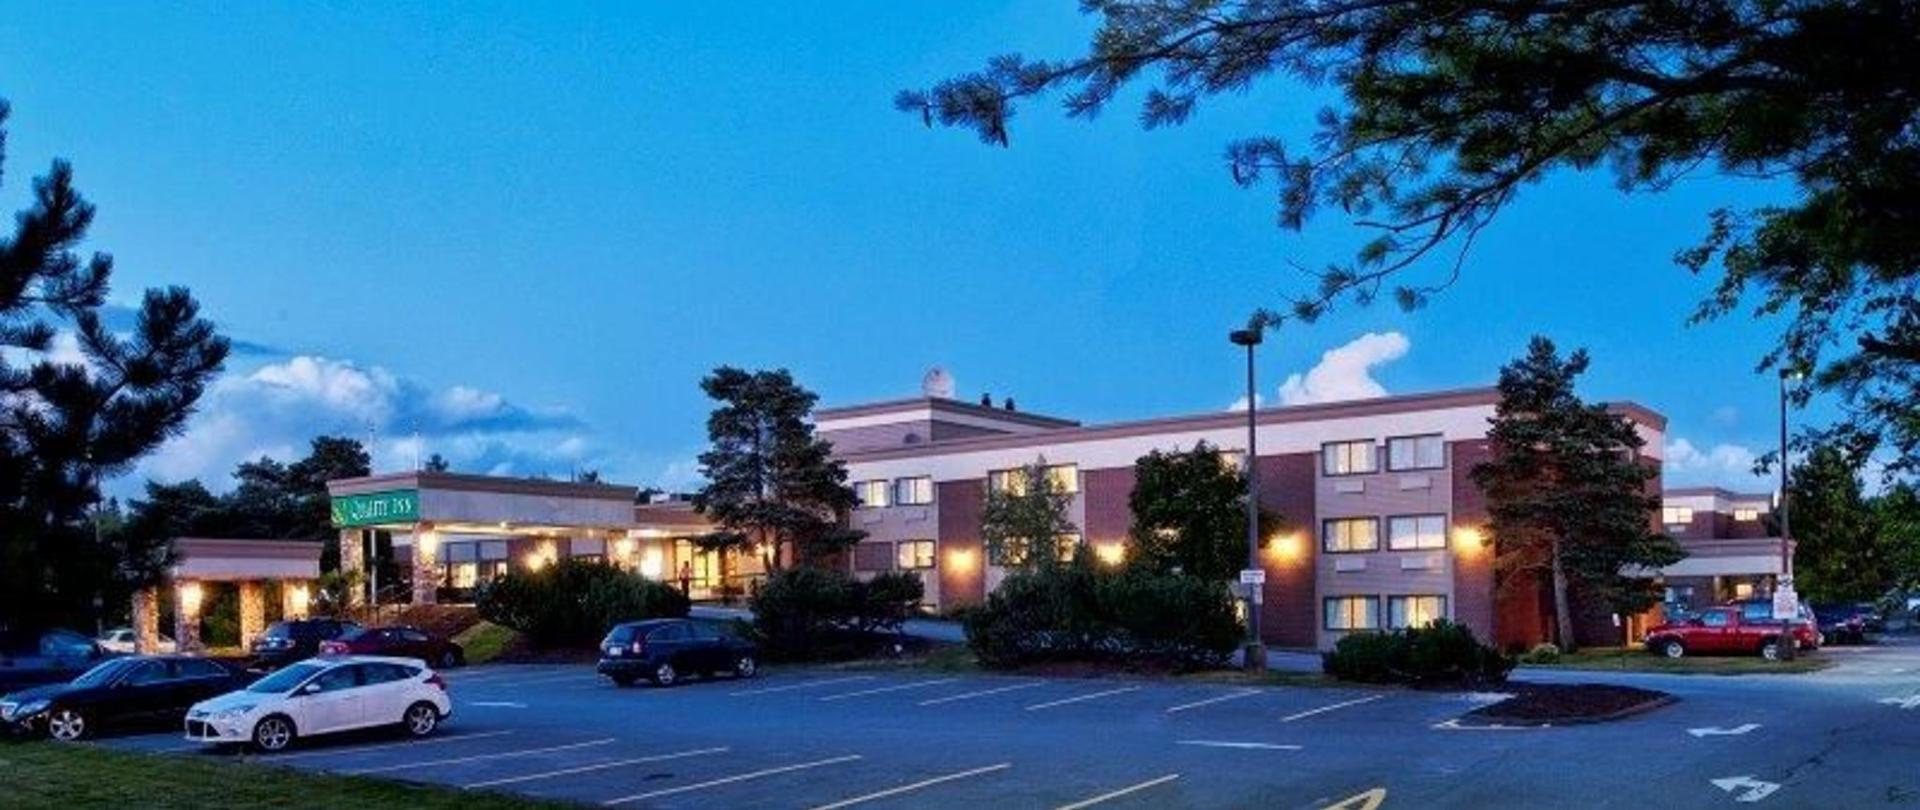 Hotels Near Halifax Ns Airport